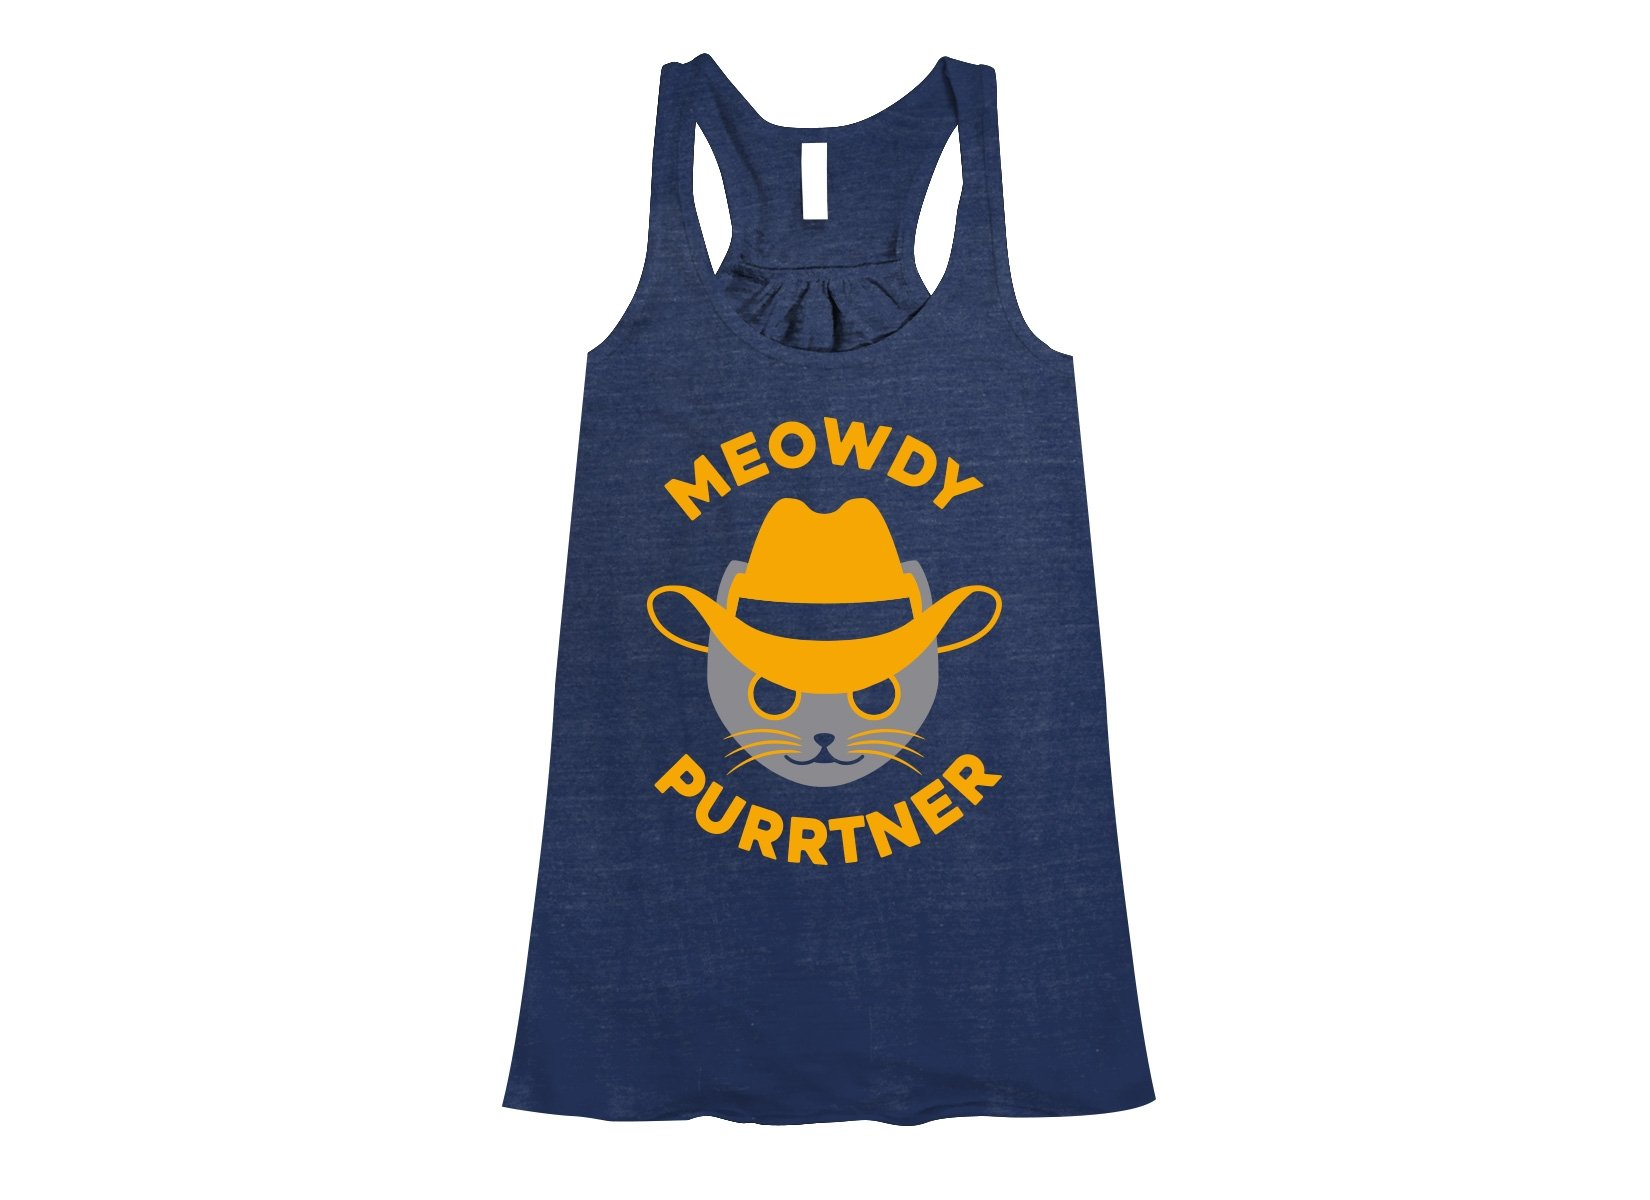 Meowdy Purrtner on Womens Tanks T-Shirt